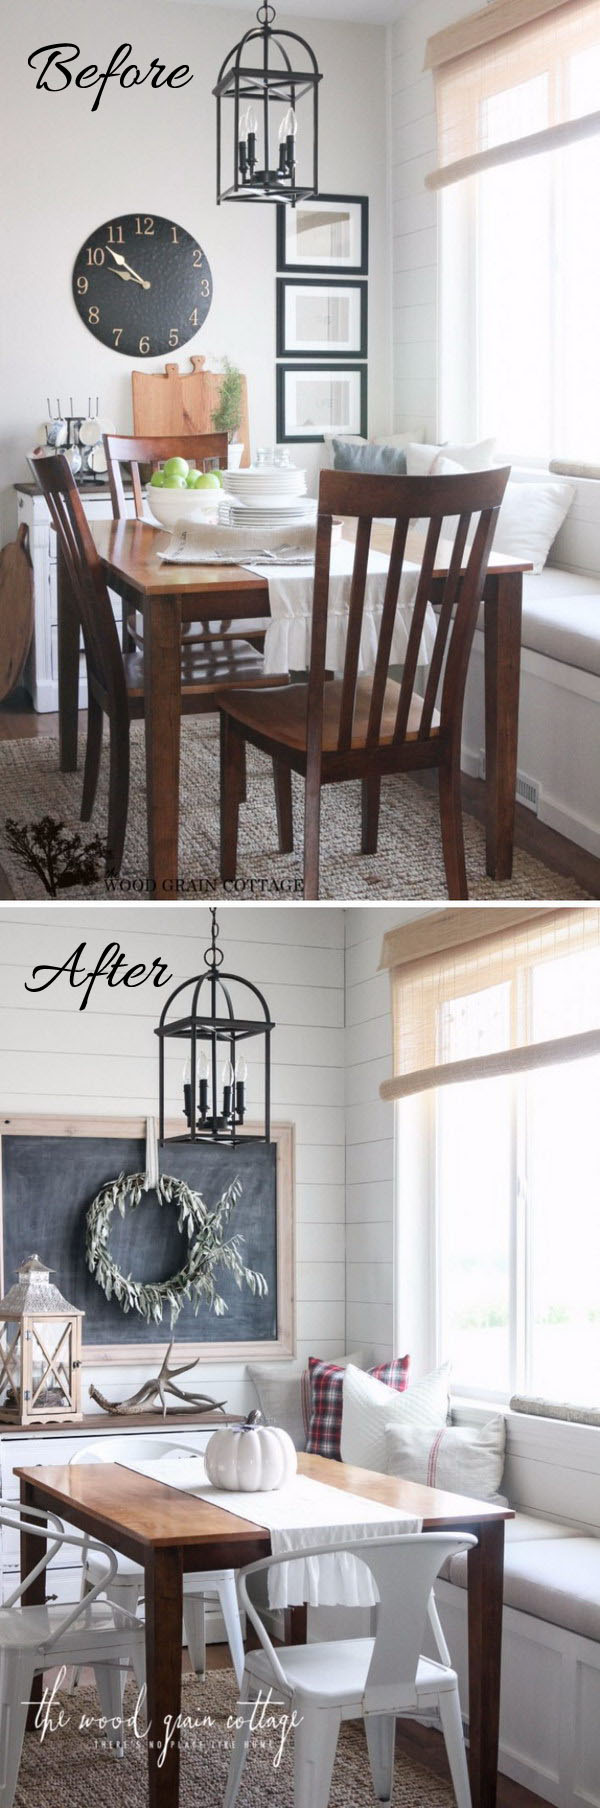 45-46-dining-room-makeover-ideas-tutorials